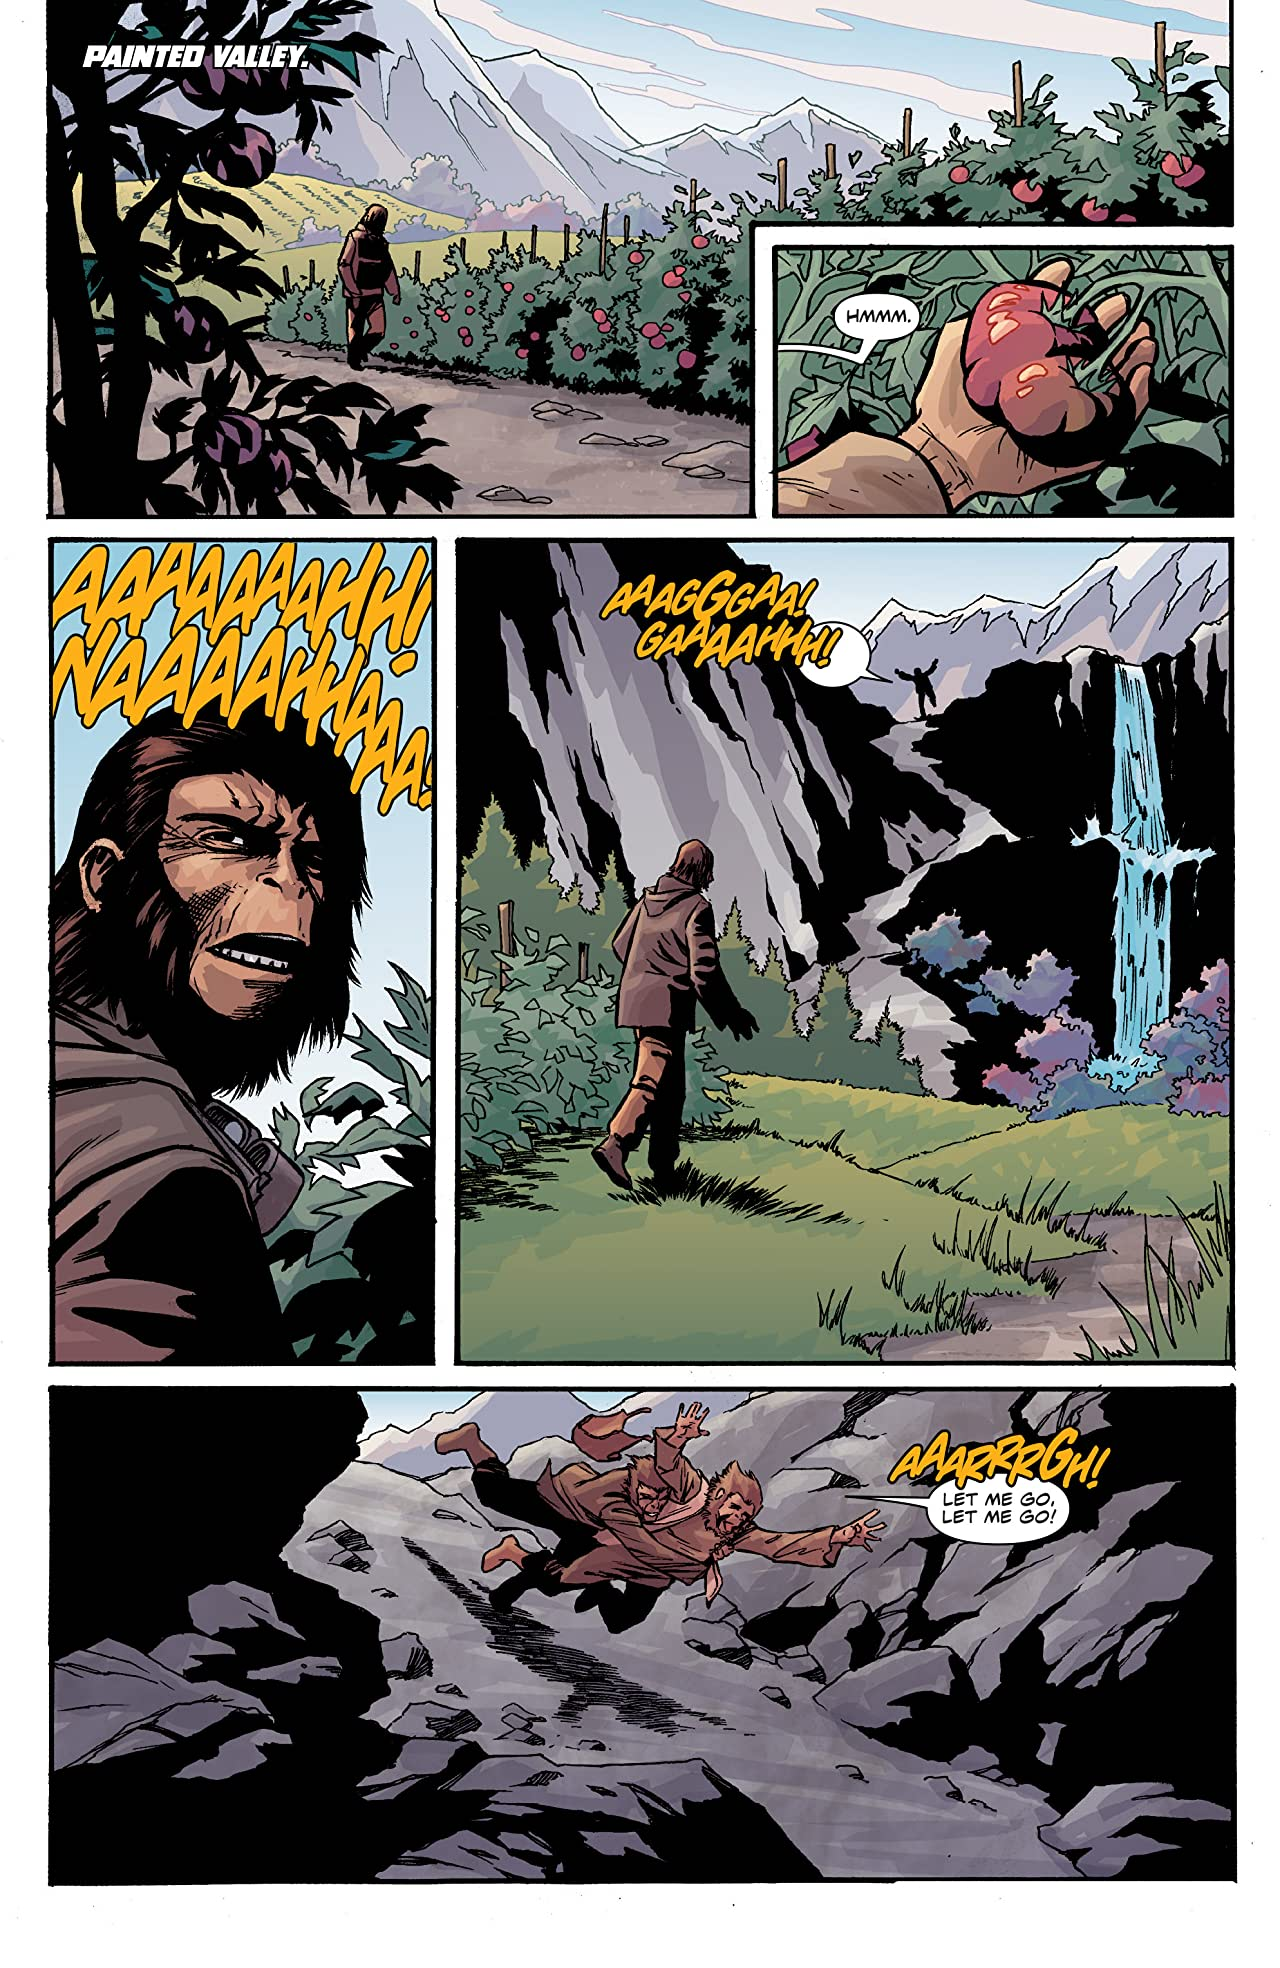 Planet of the Apes: Cataclysm #6